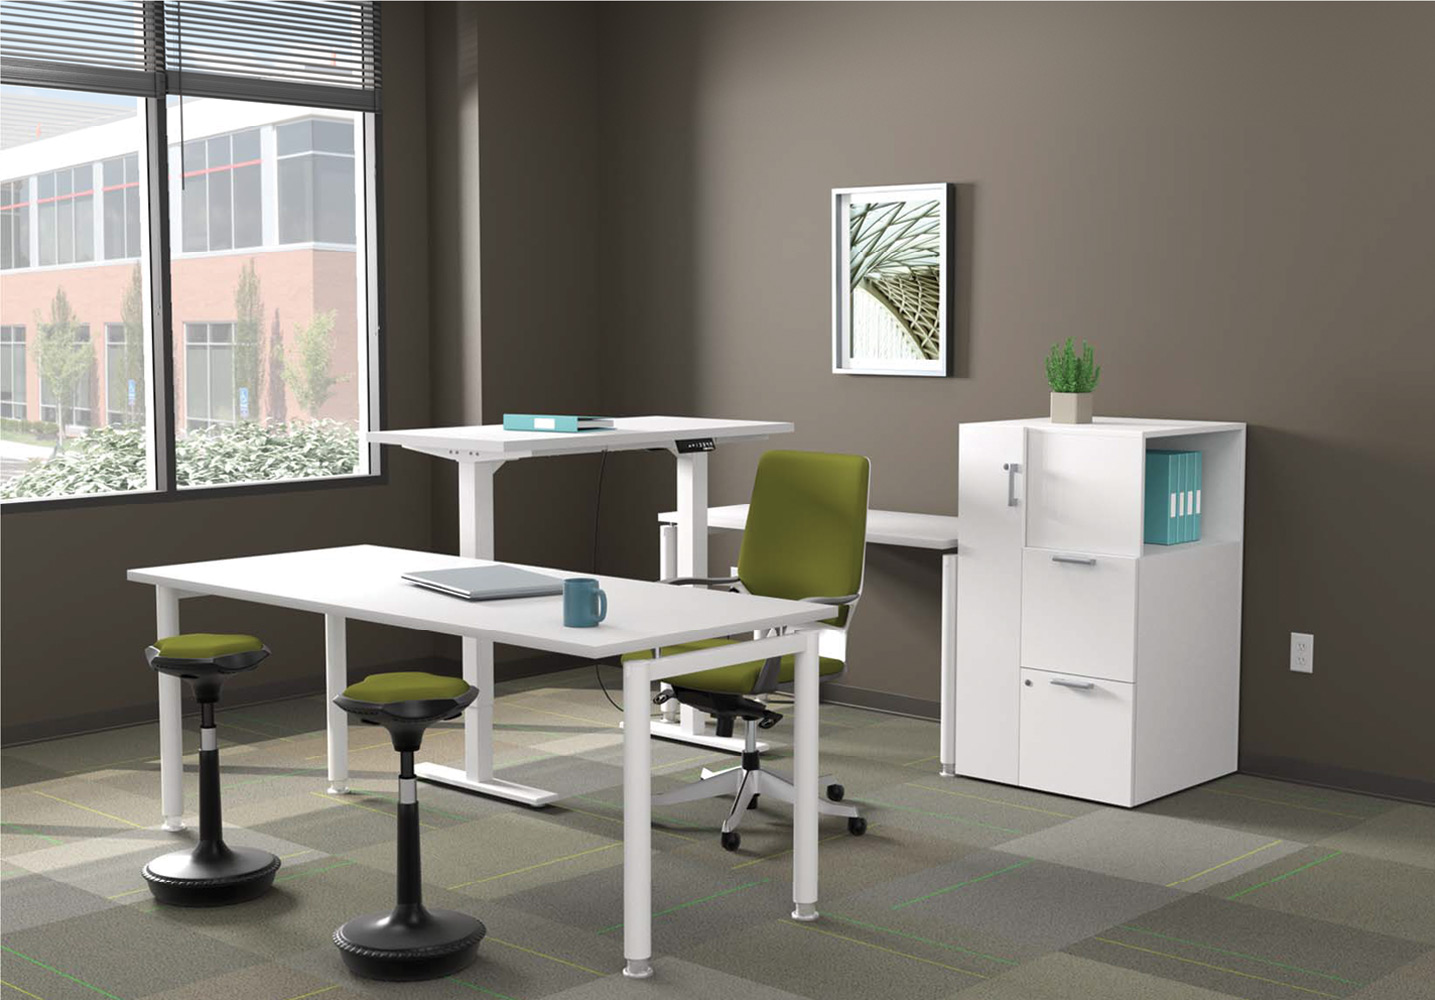 stool chair adjustable costco furniture chairs executive office suites -